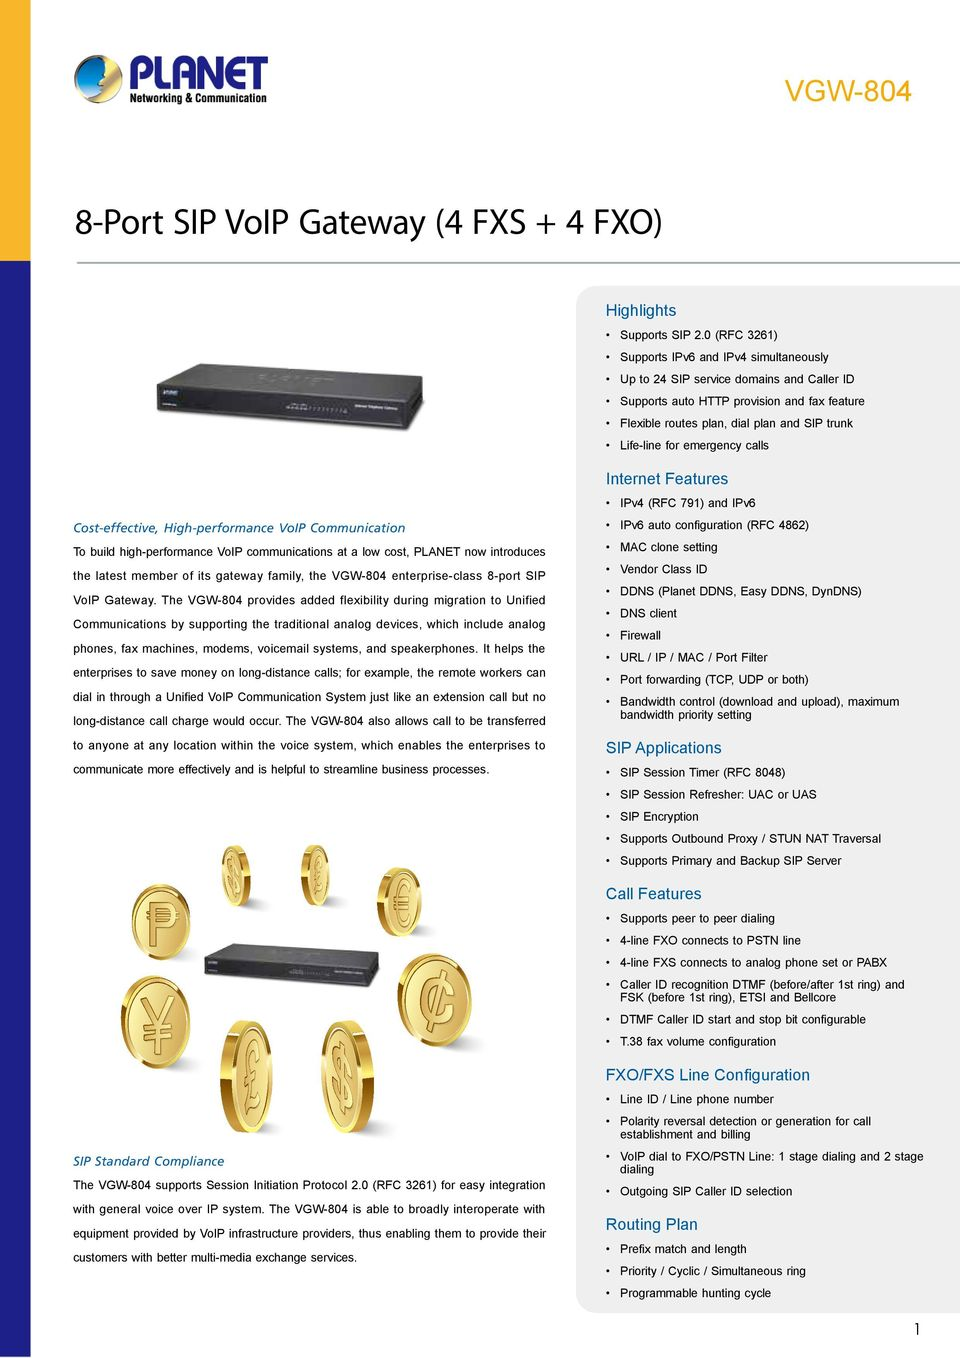 emergency calls Cost-effective, High-performance VoIP Communication To build high-performance VoIP communications at a low cost, PLANET now introduces the latest member of its gateway family, the